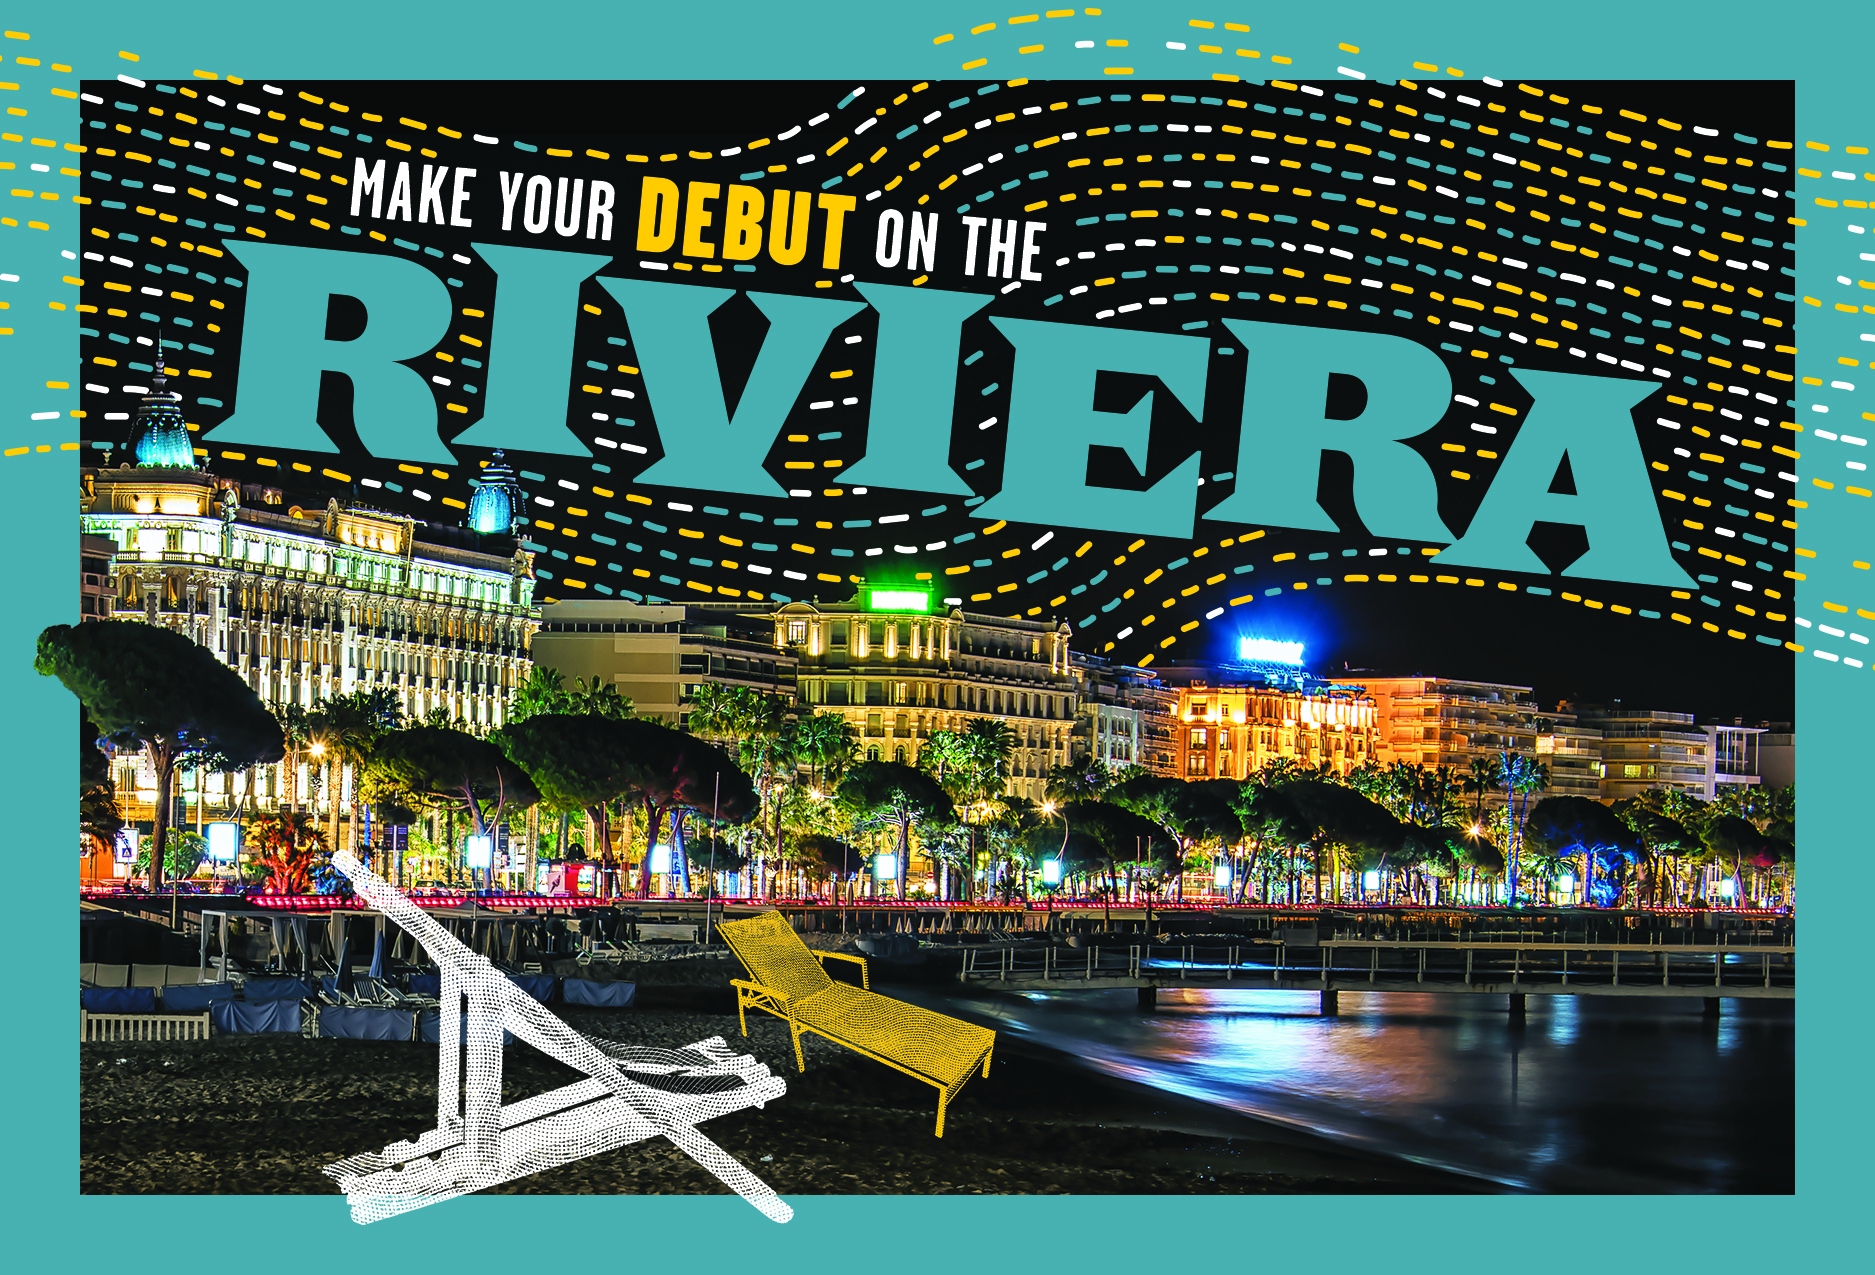 A postcard image of the French Riviera at night